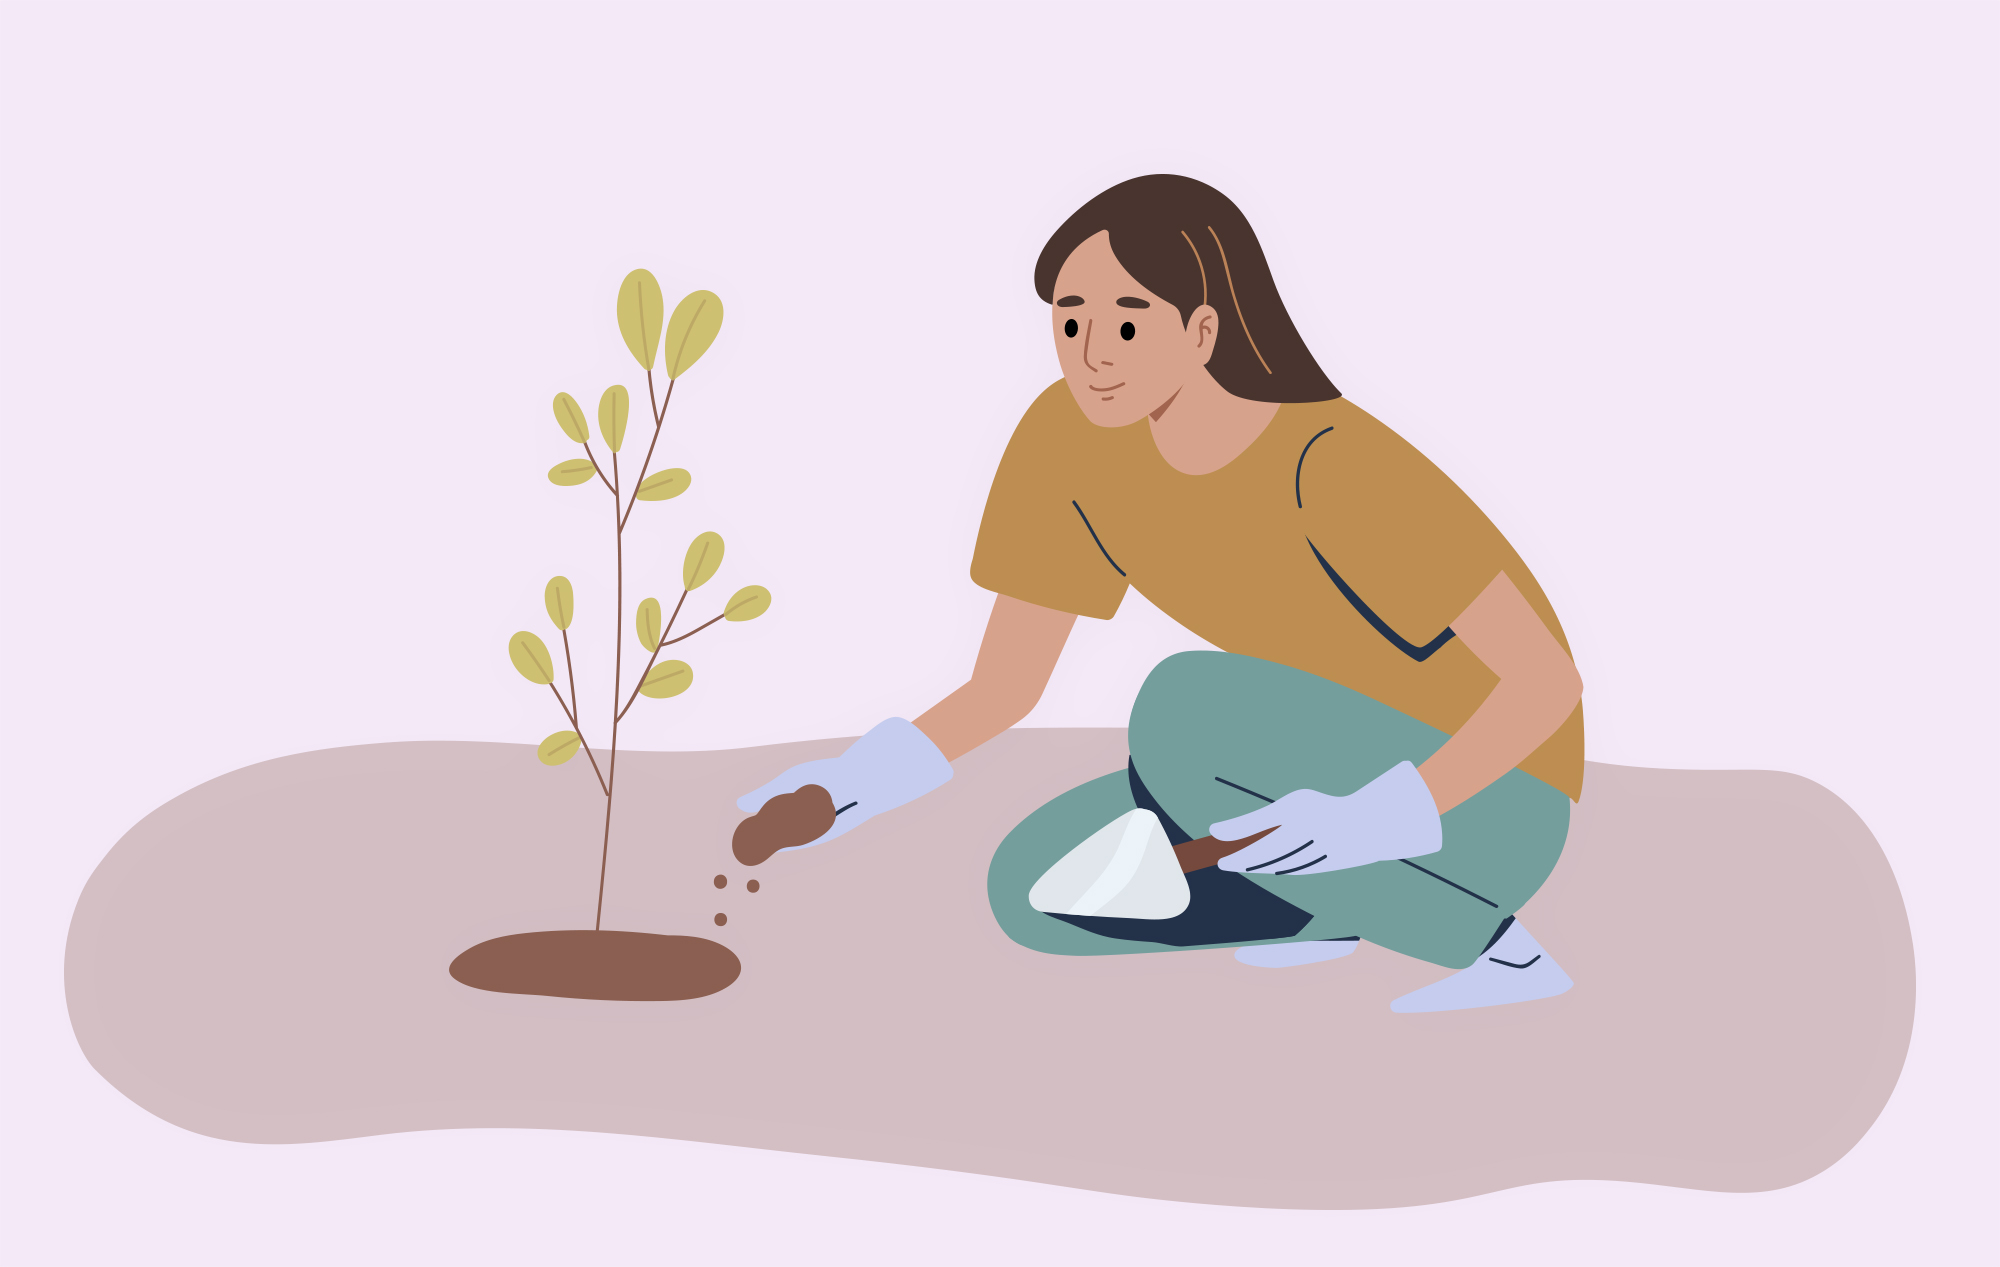 Illustration of a woman planting a tree in the soil; a metaphor for fostering growth.